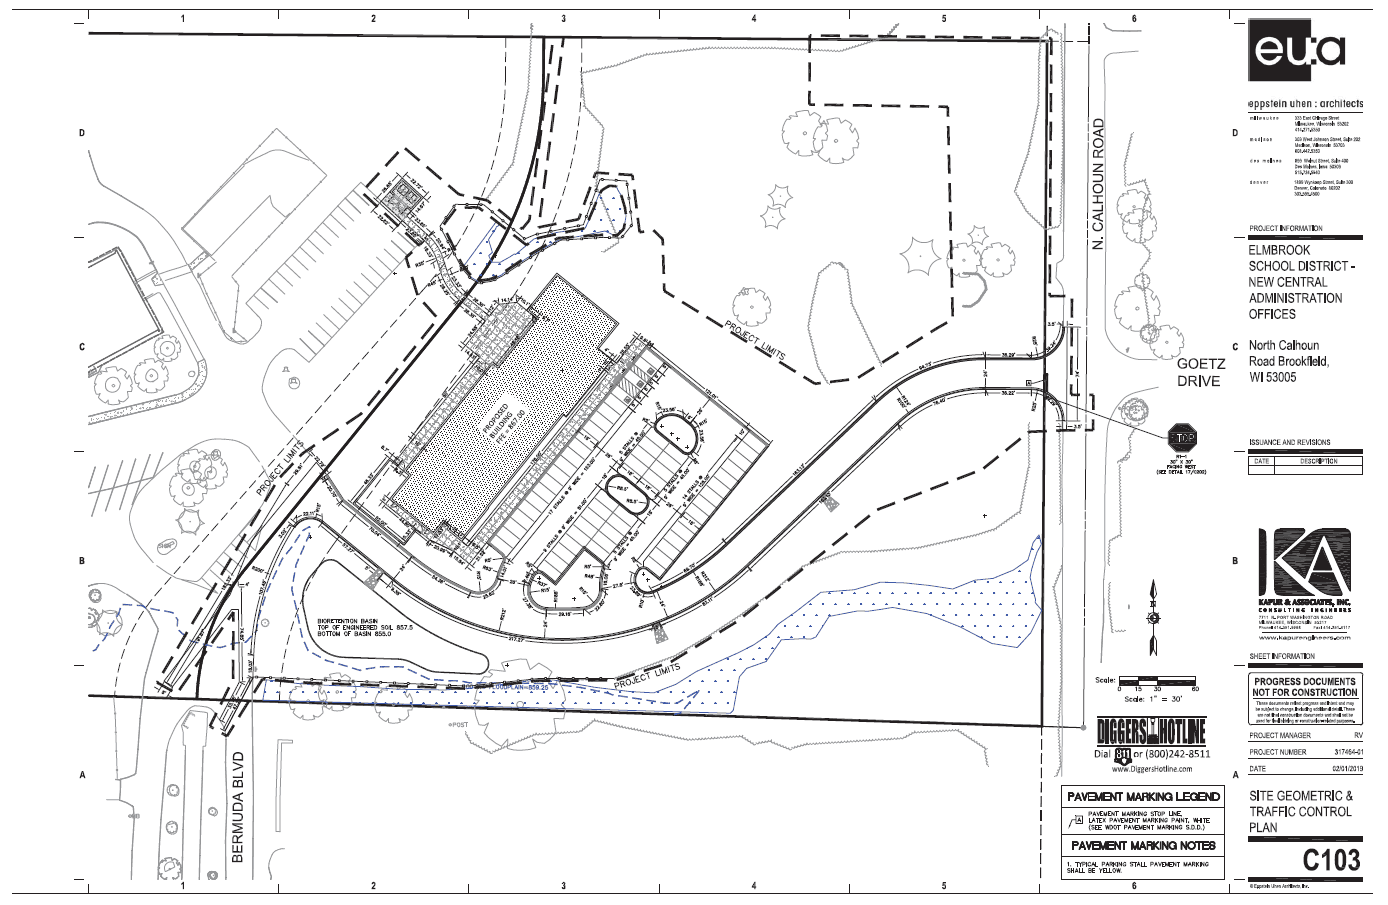 Site Plan - Elmbrook School District Administration Building